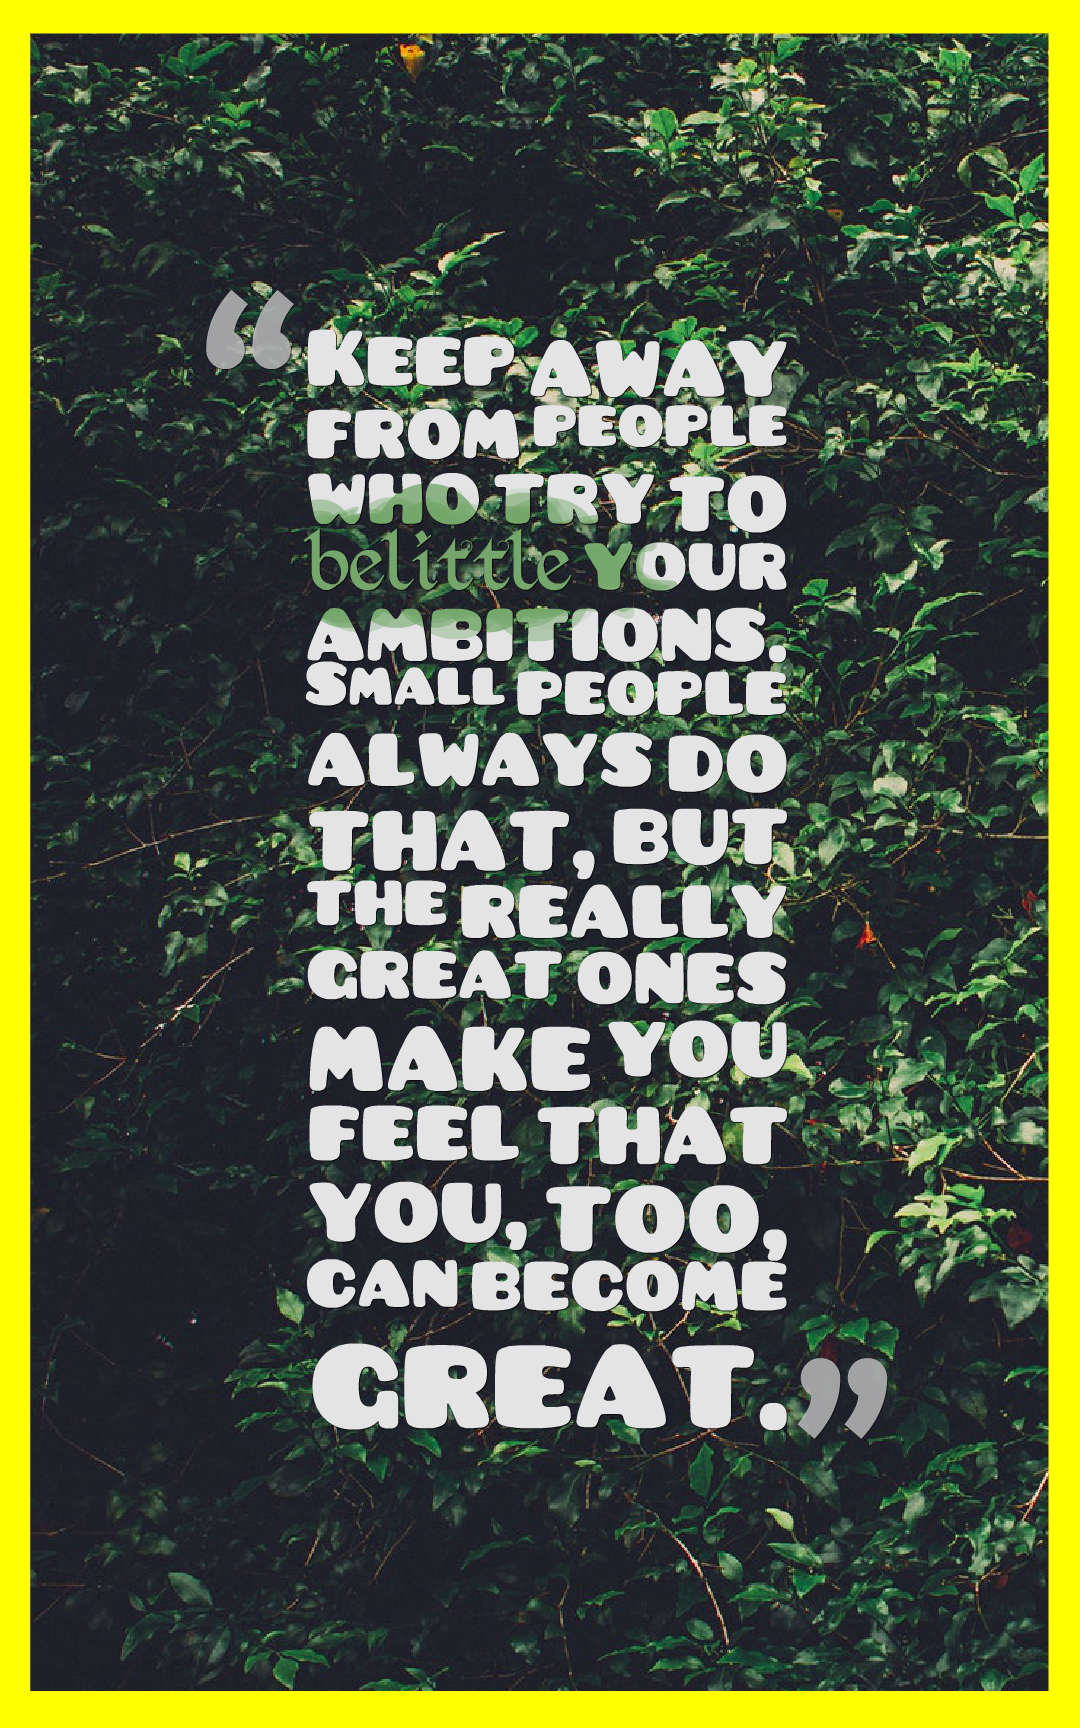 Quotes image of Keep away from people who try to belittle your ambitions. Small people always do that, but the really great ones make you feel that you, too, can become great.